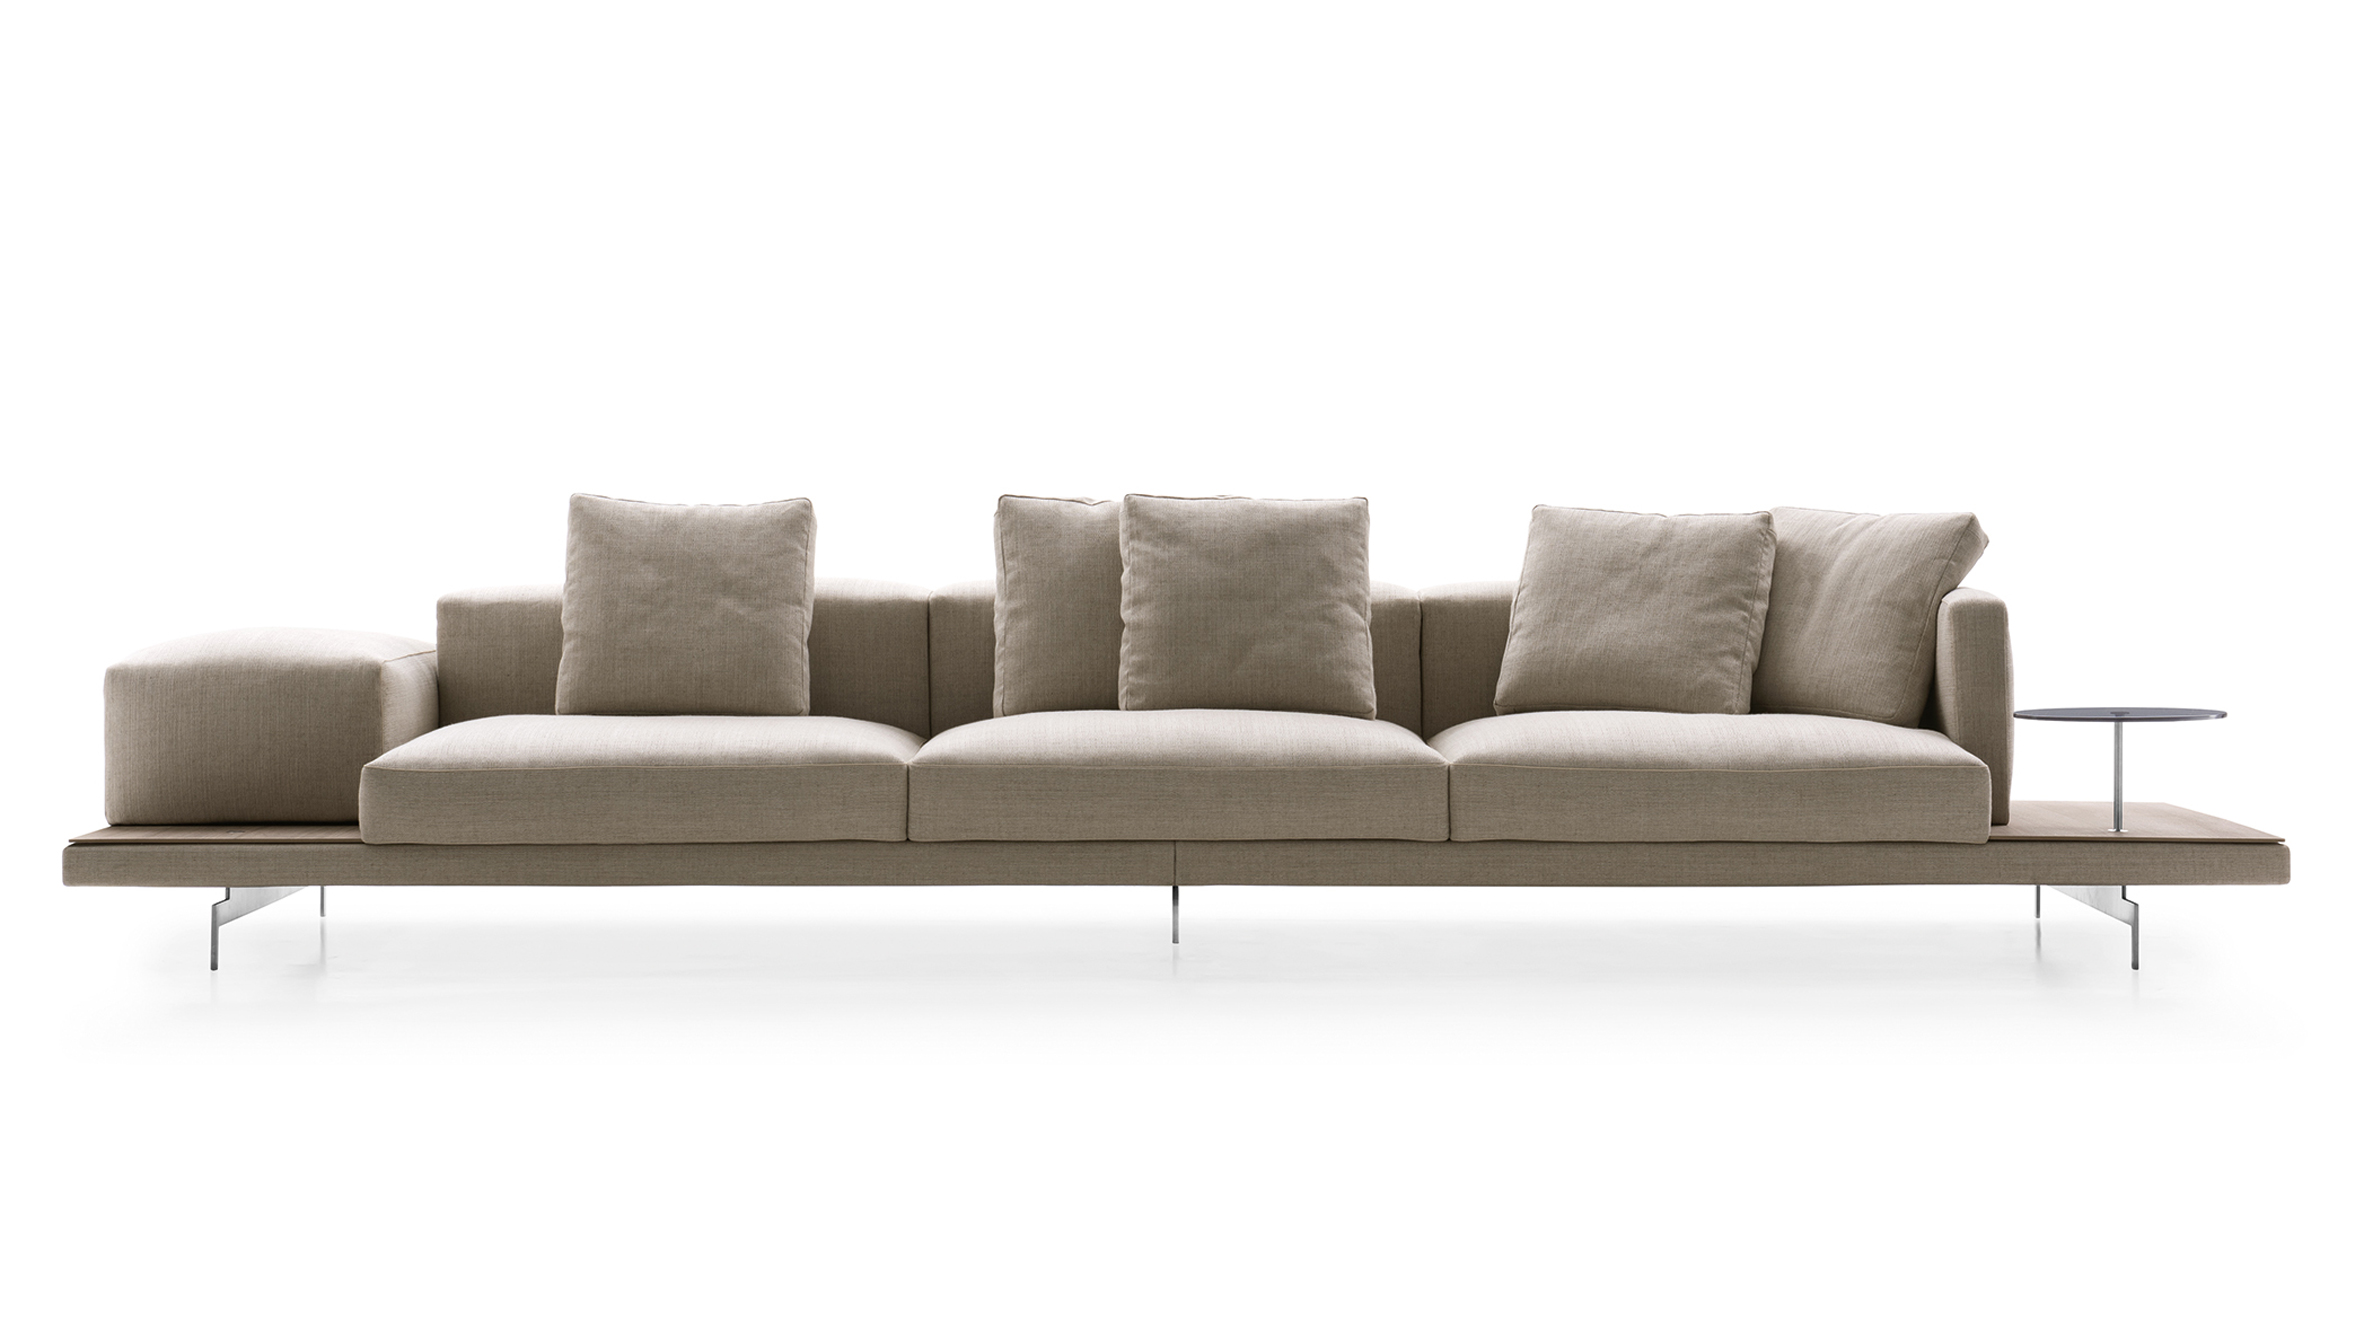 Piero Lissoni Modular Sofa Dock Sofa By Piero Lissoni For B B Italia Is